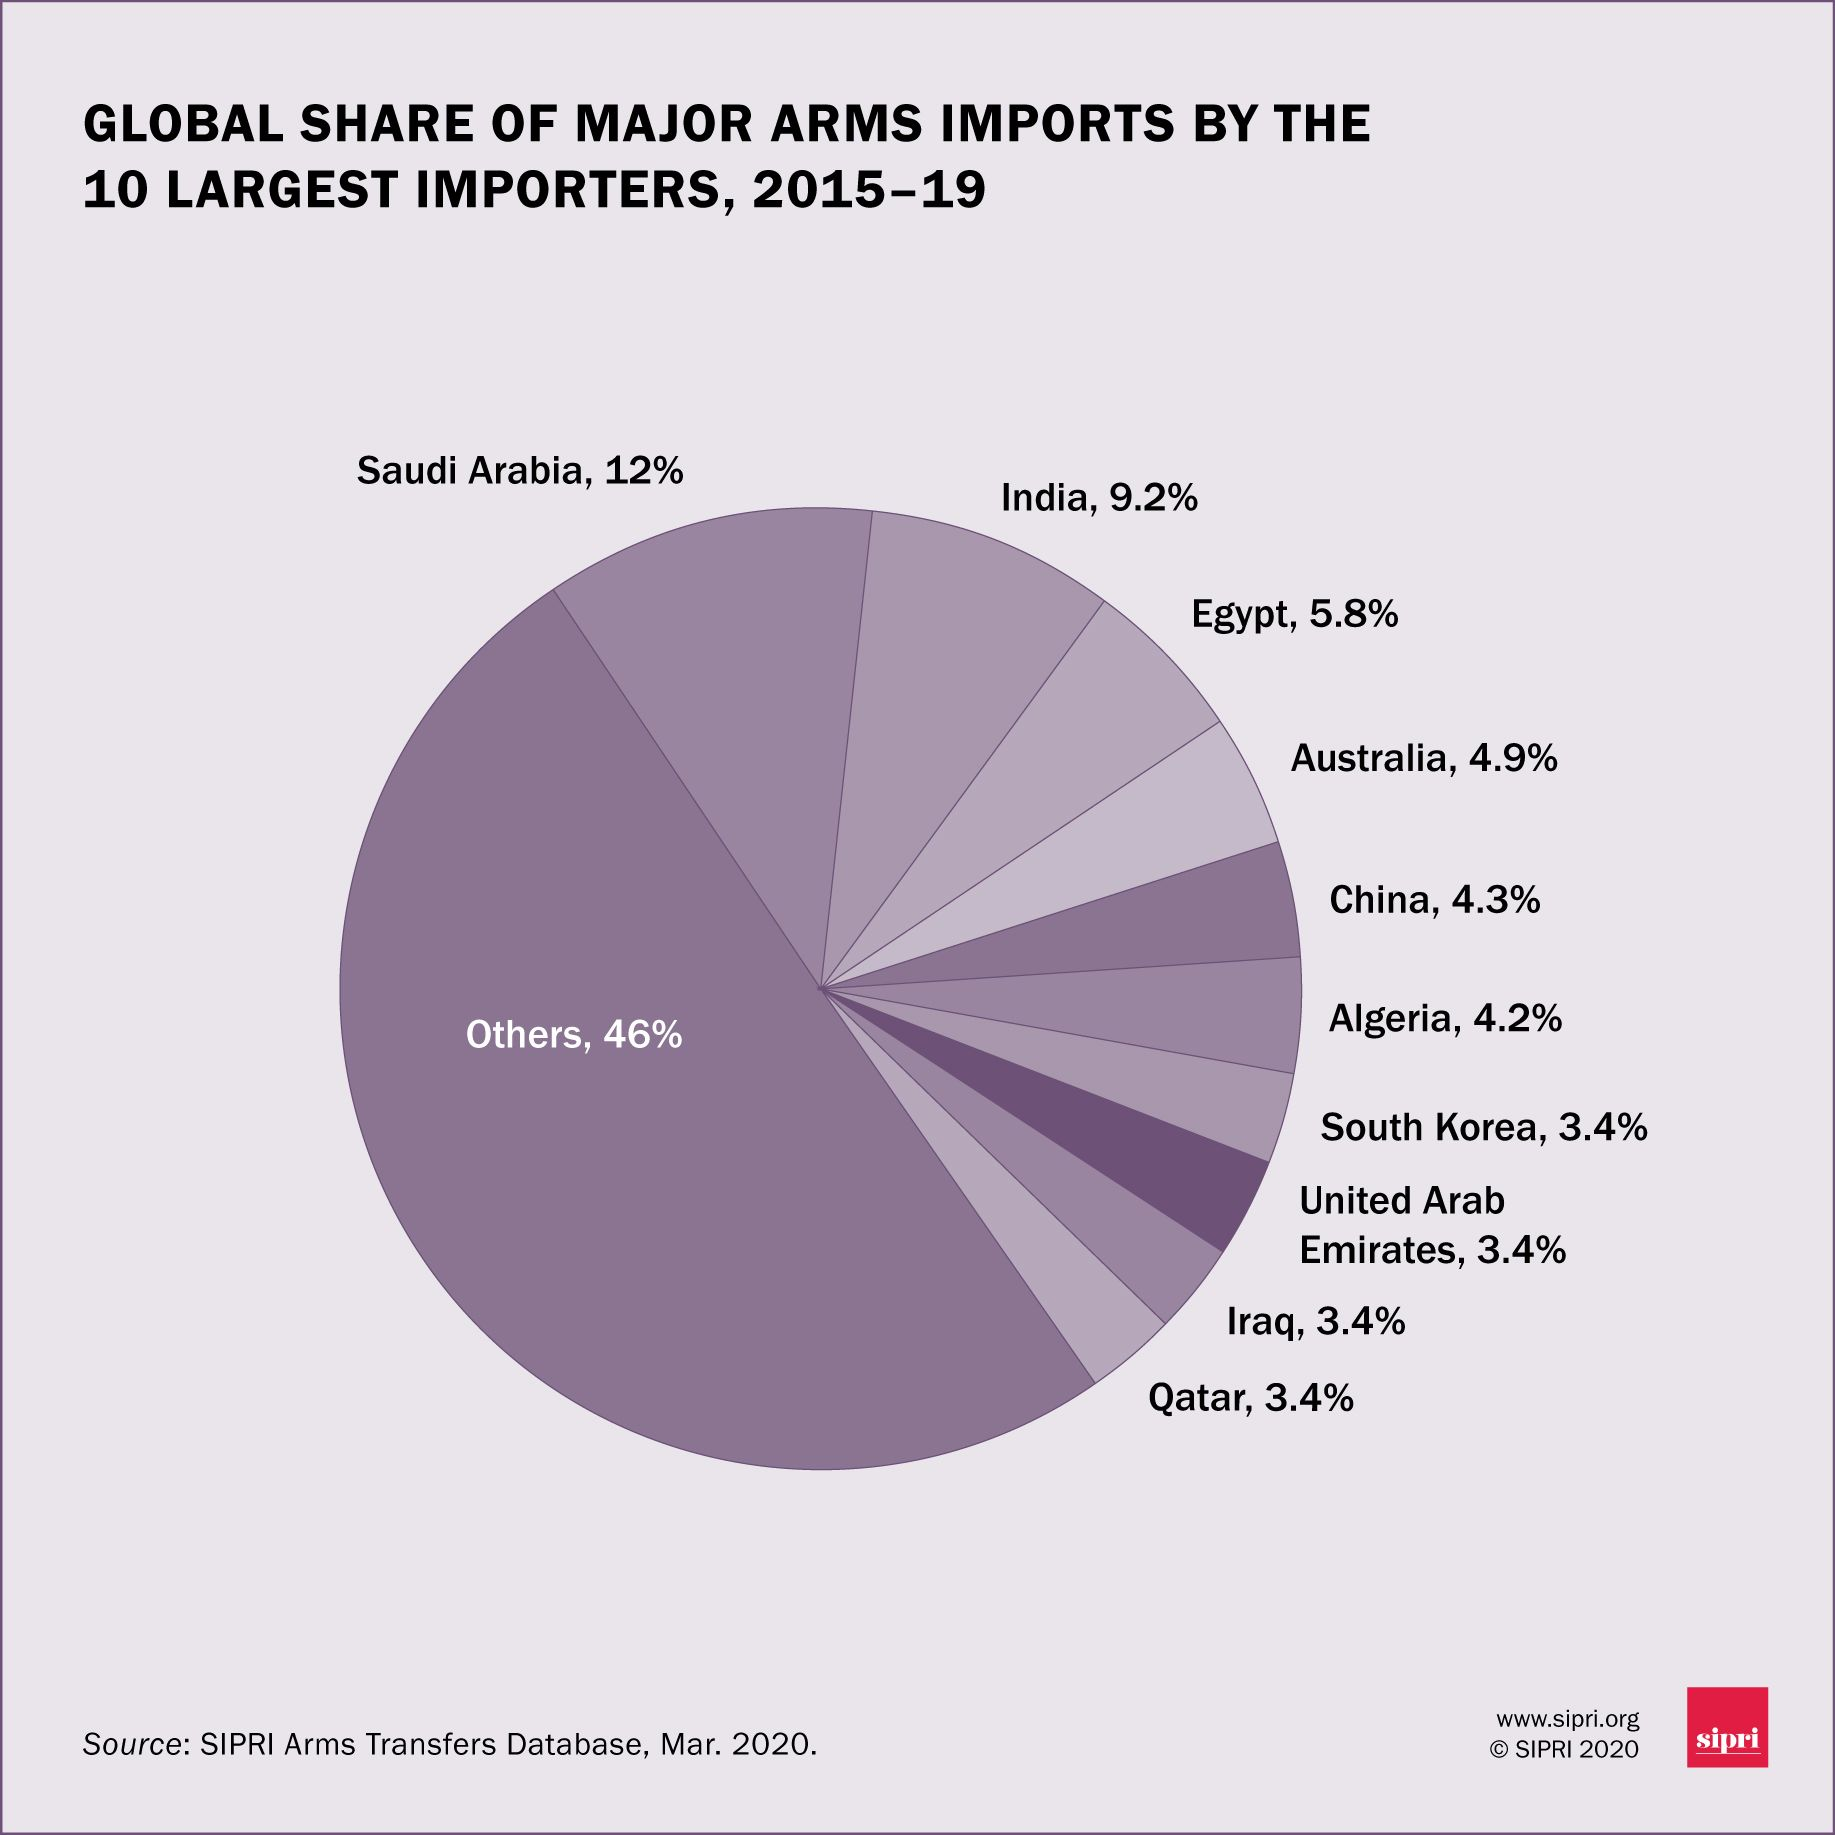 global share of major arms imports by 10 largest importers 2015-2019